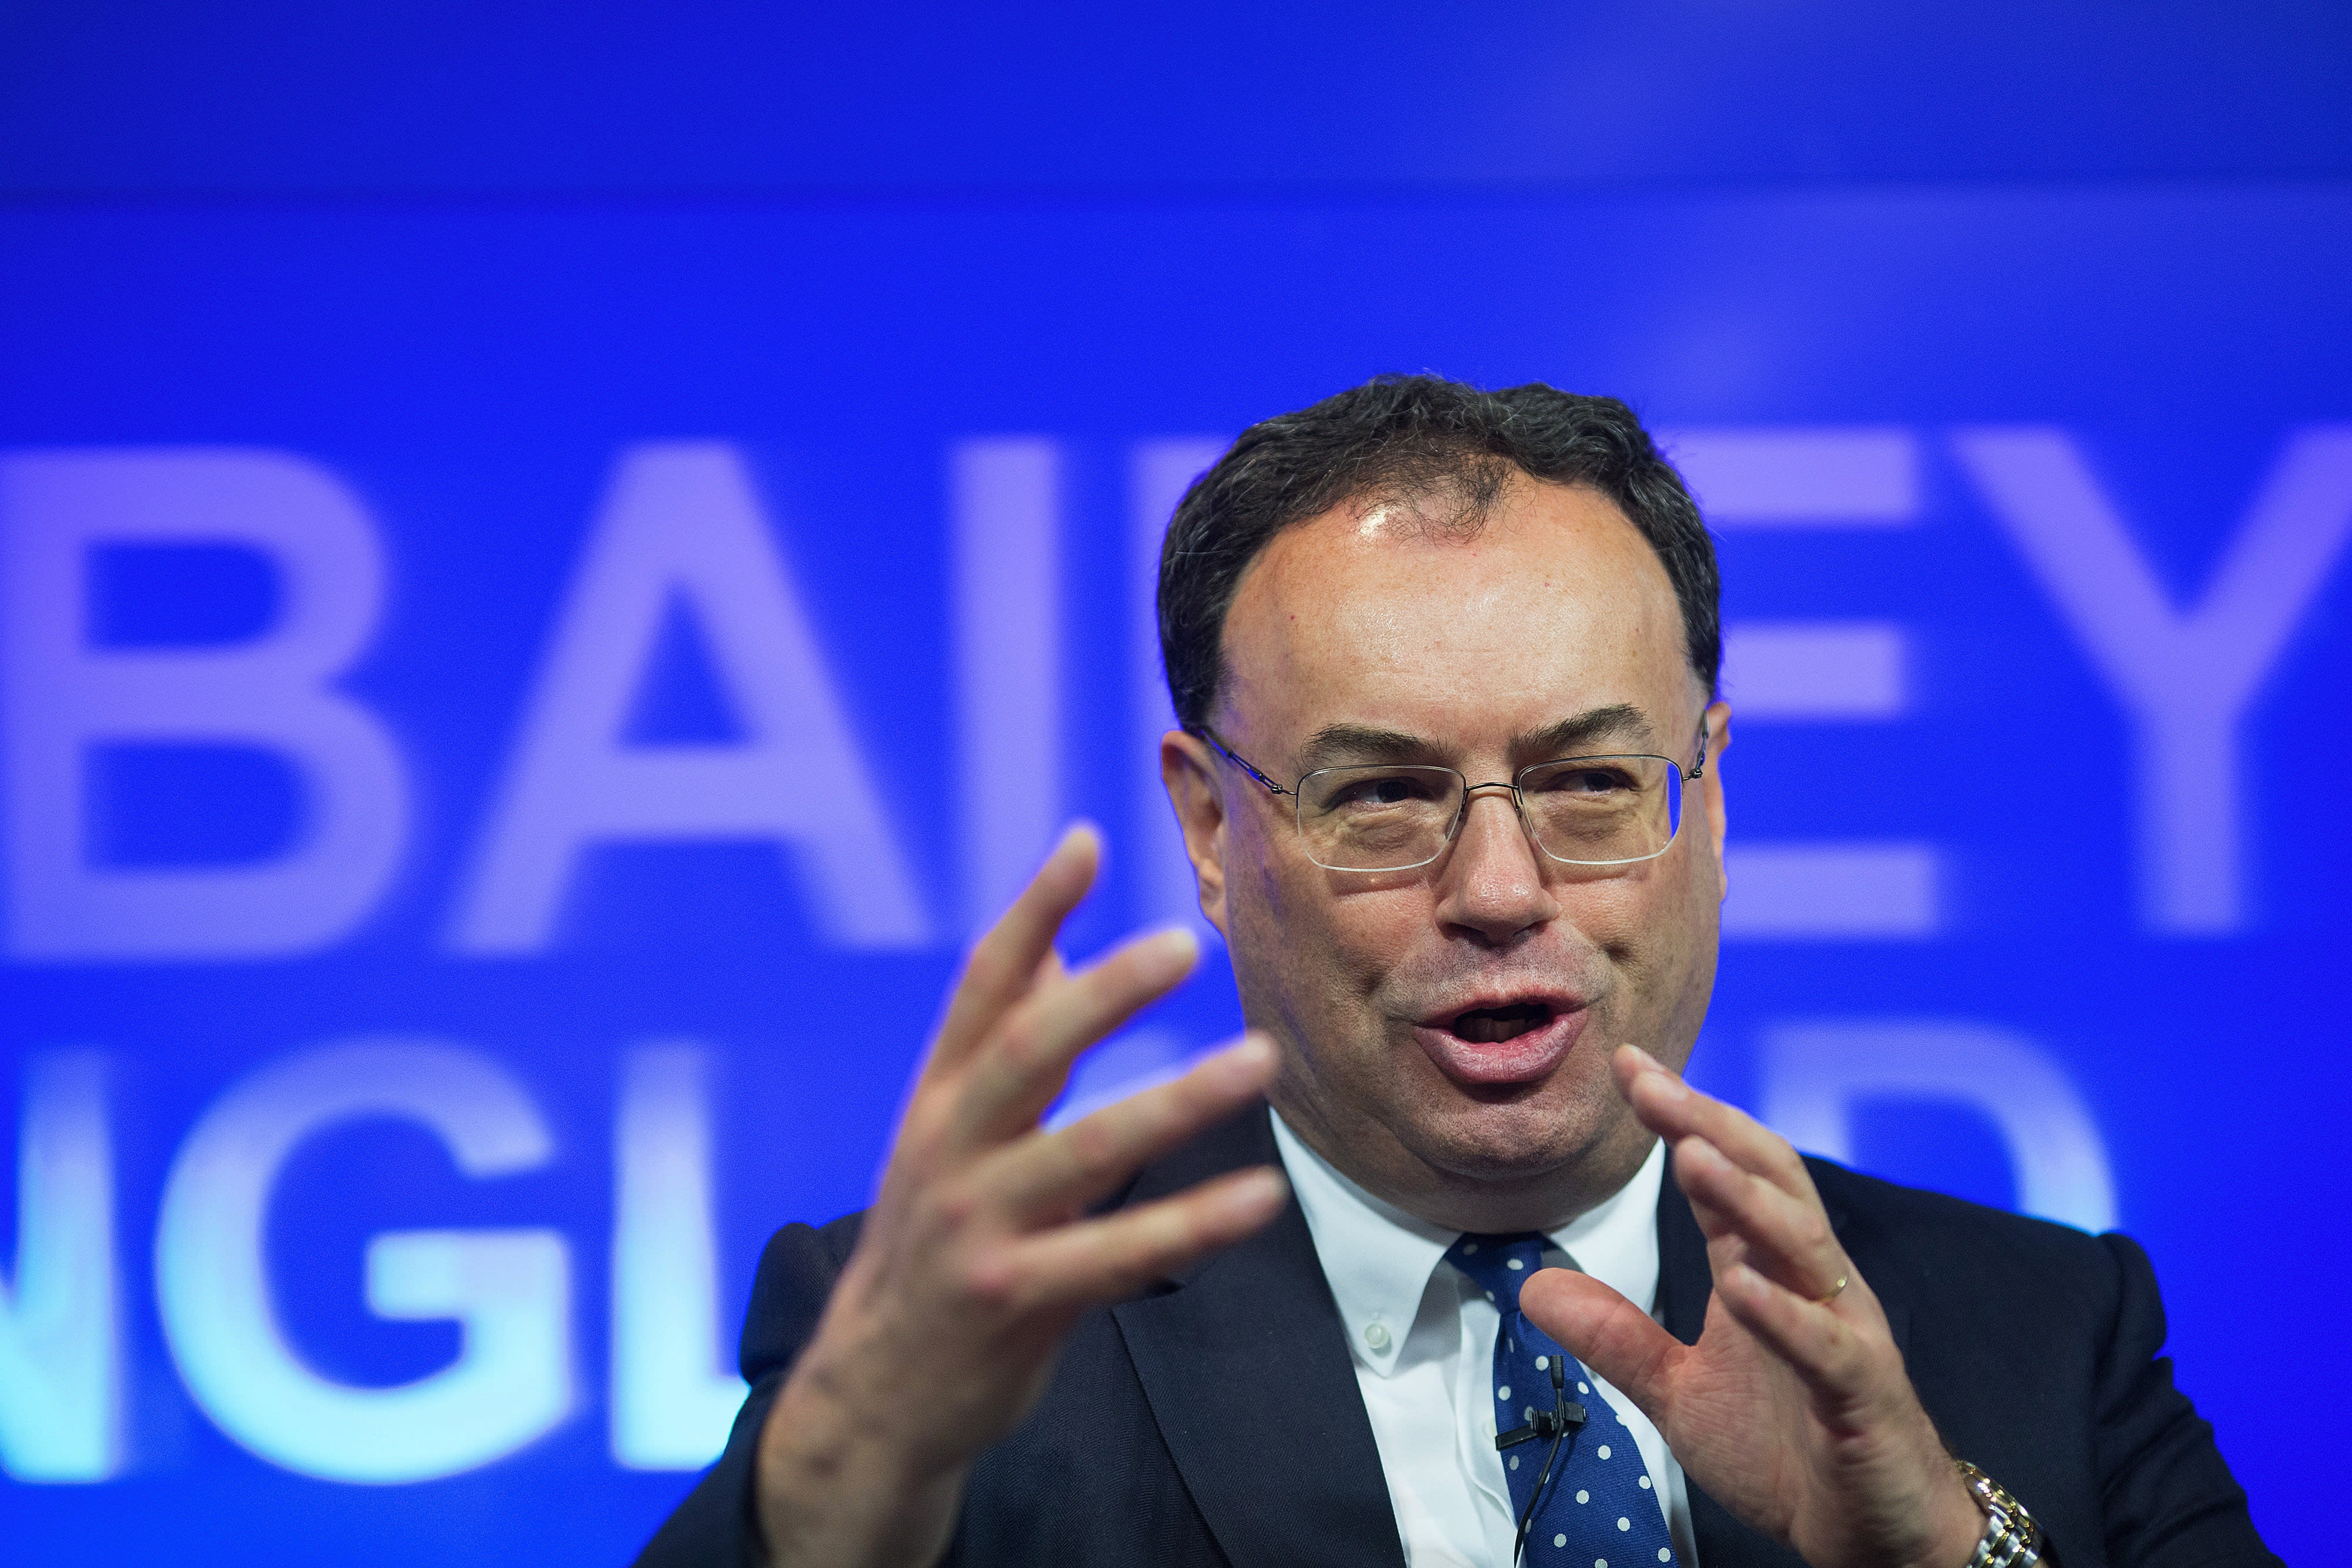 Bailey says senior managers' regime key to restoring trust